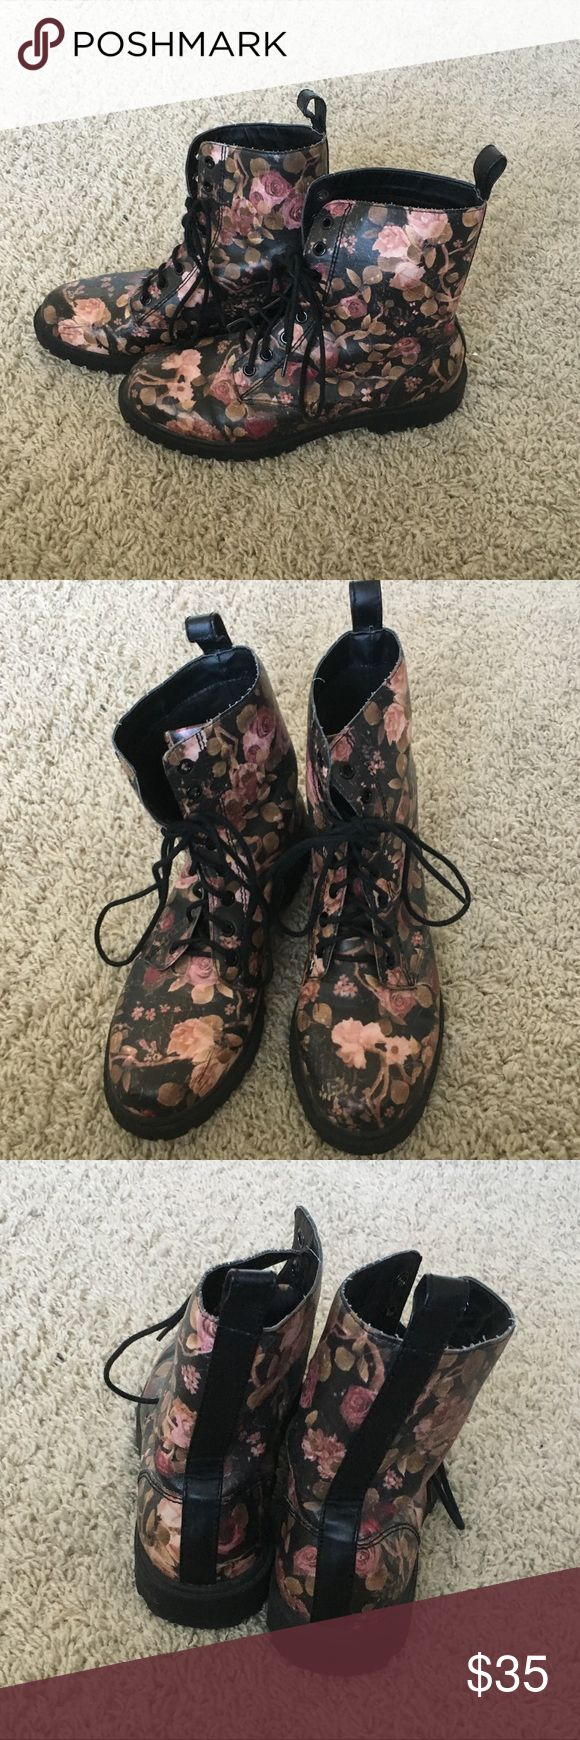 H&M floral combat boots. Great condition. Great for rainy days. H&M Shoes Combat & Moto Boots